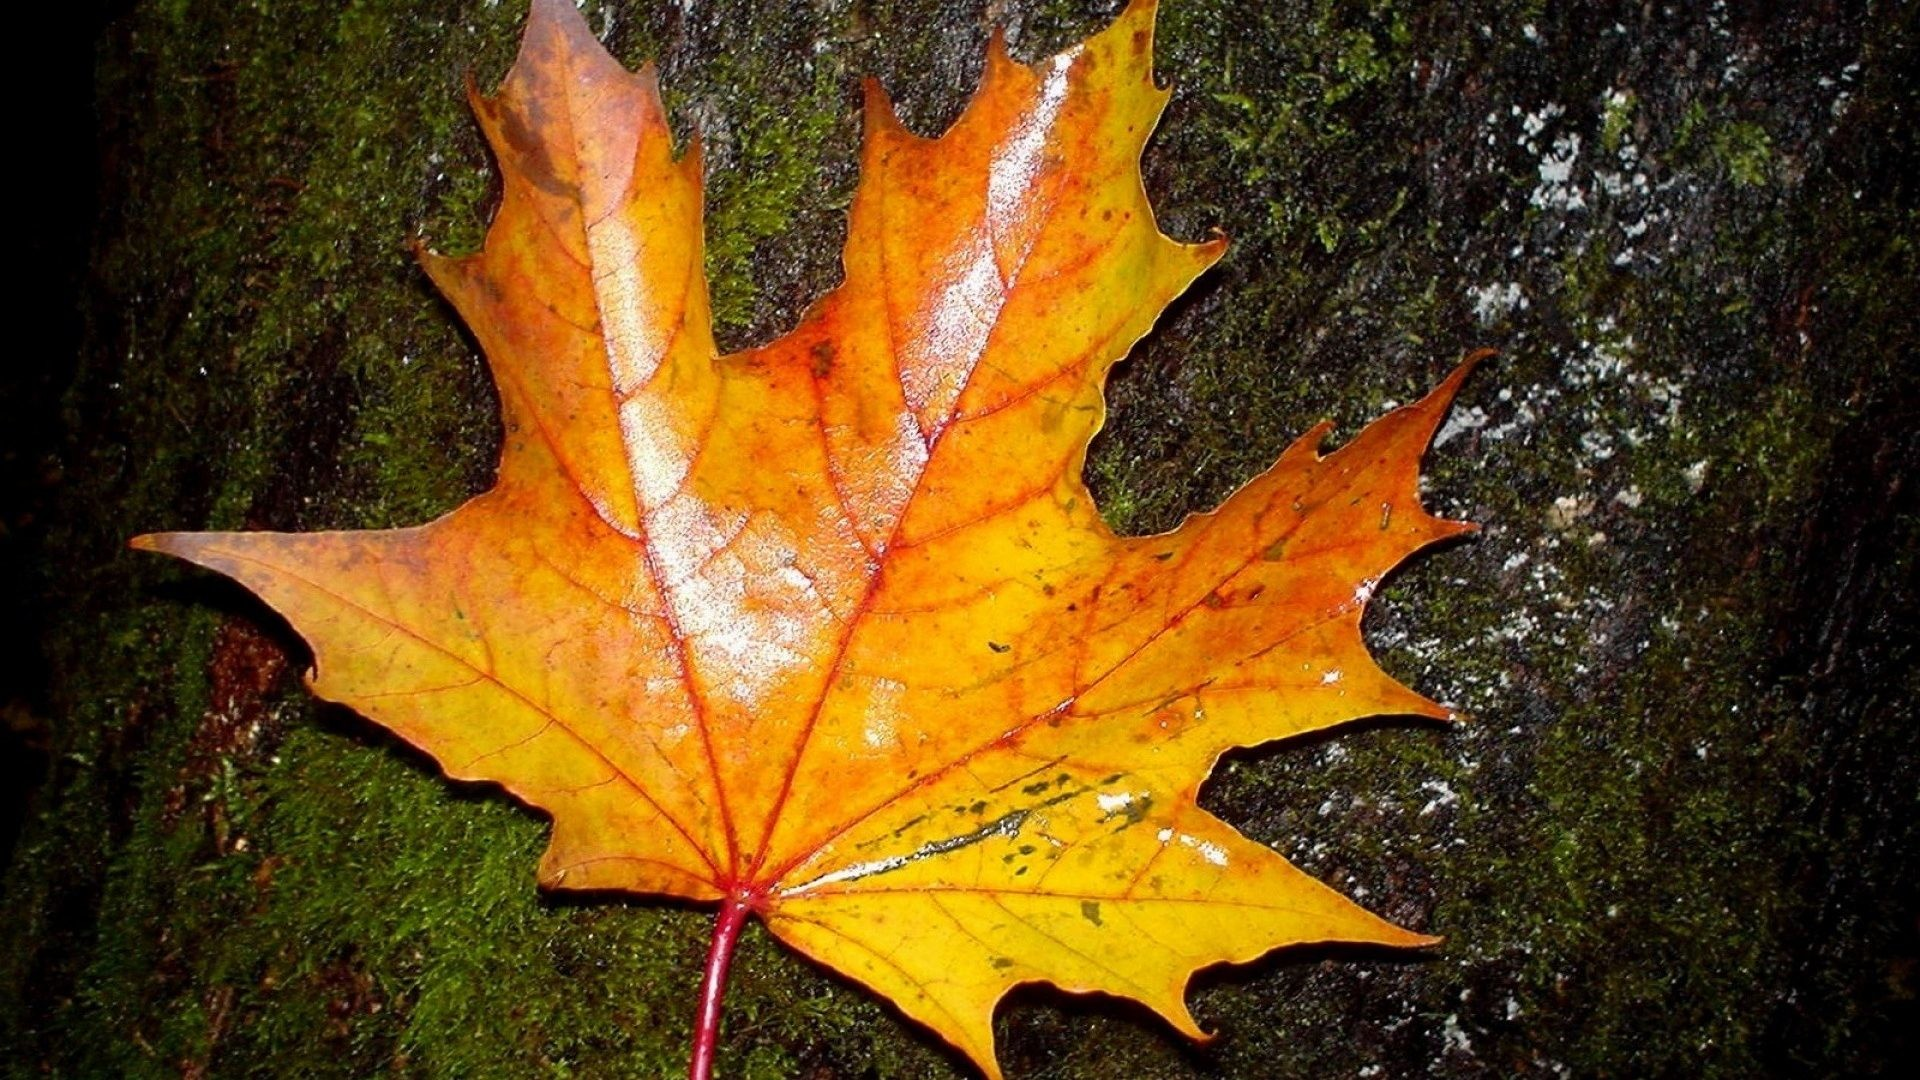 Leaves – Season Autumn Leaf Trees Hd Nature Wallpapers For Iphone 6 for HD  16: